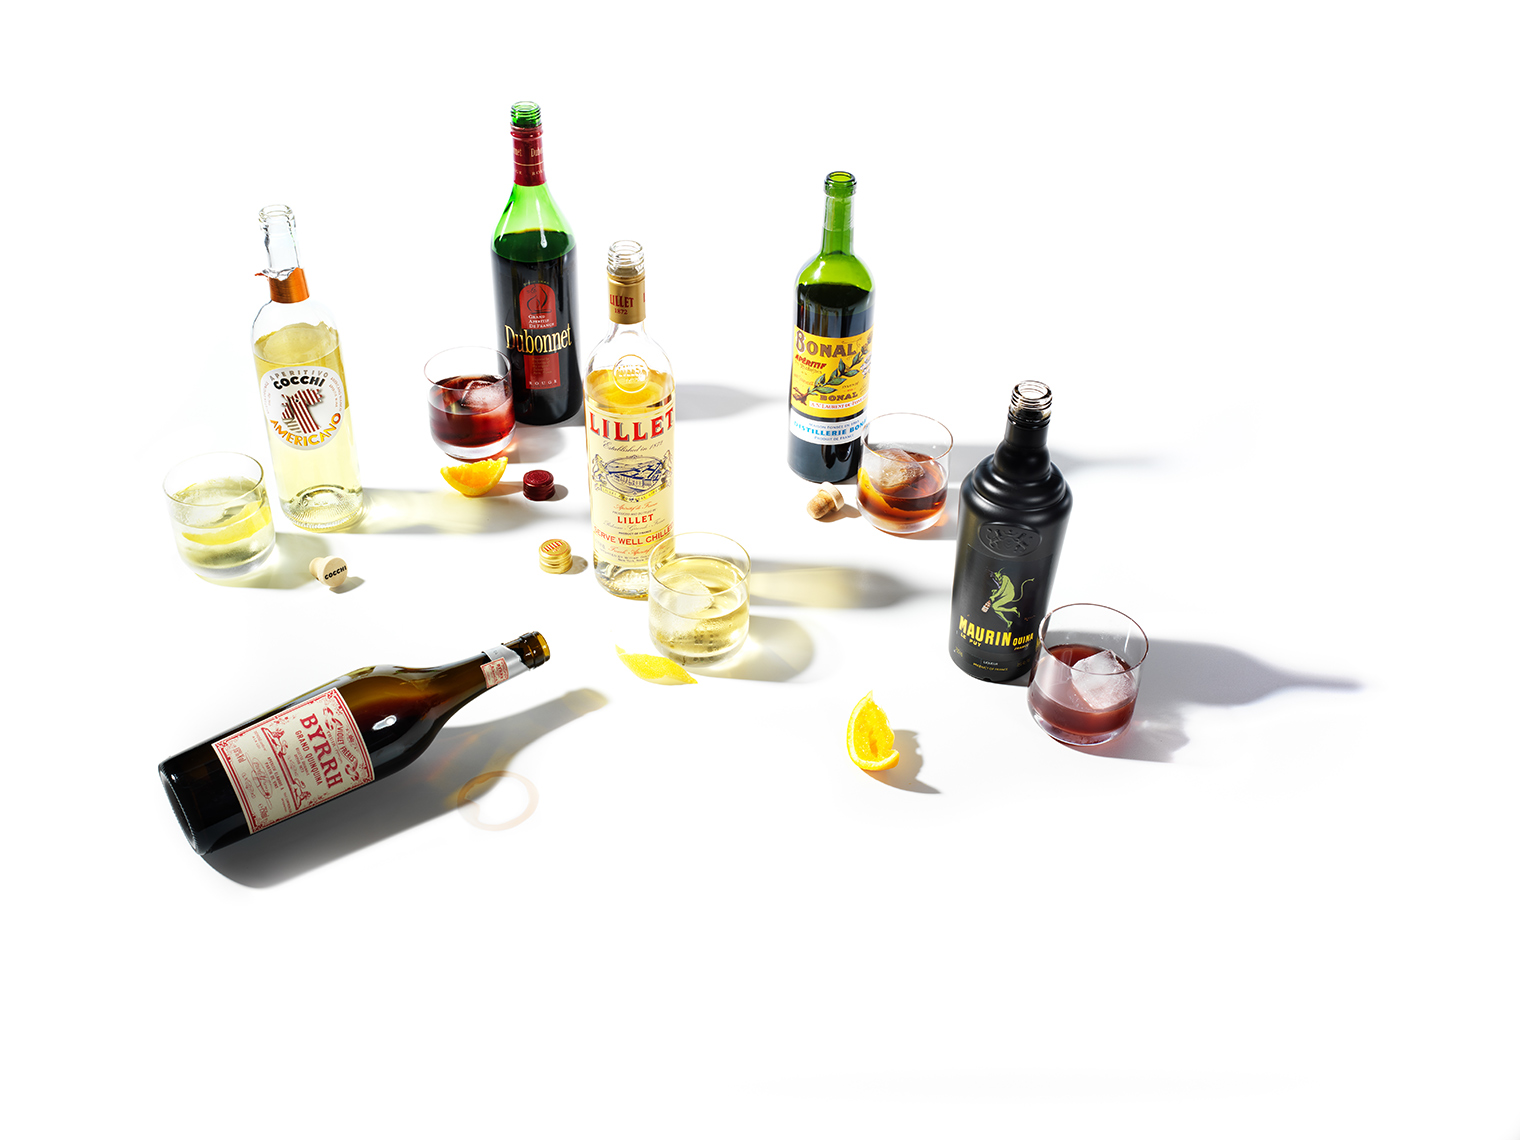 Cocktails and Liquor Bottles